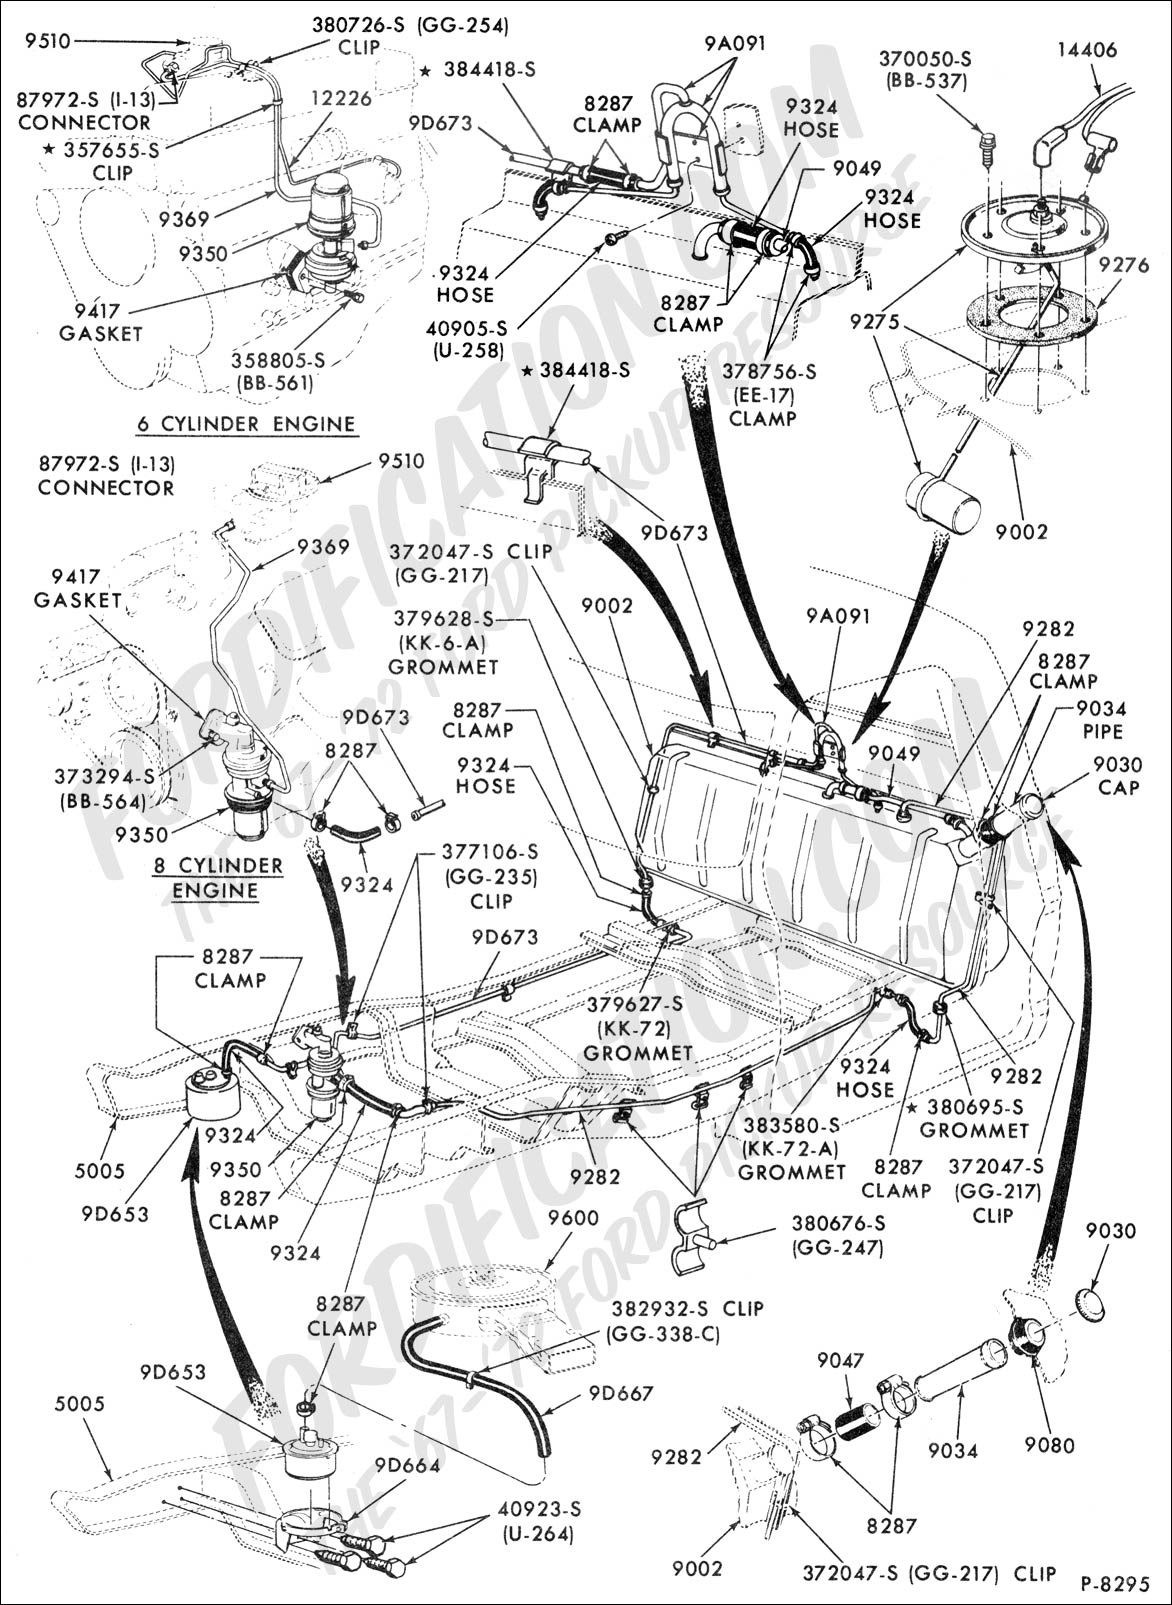 ford truck technical drawings and schematics section e engine fuel system and related parts evaporative emission system in cab fuel tank 1971 1972 f100 6 cyl 240 300 and 8 cyl 302 360 390 engines